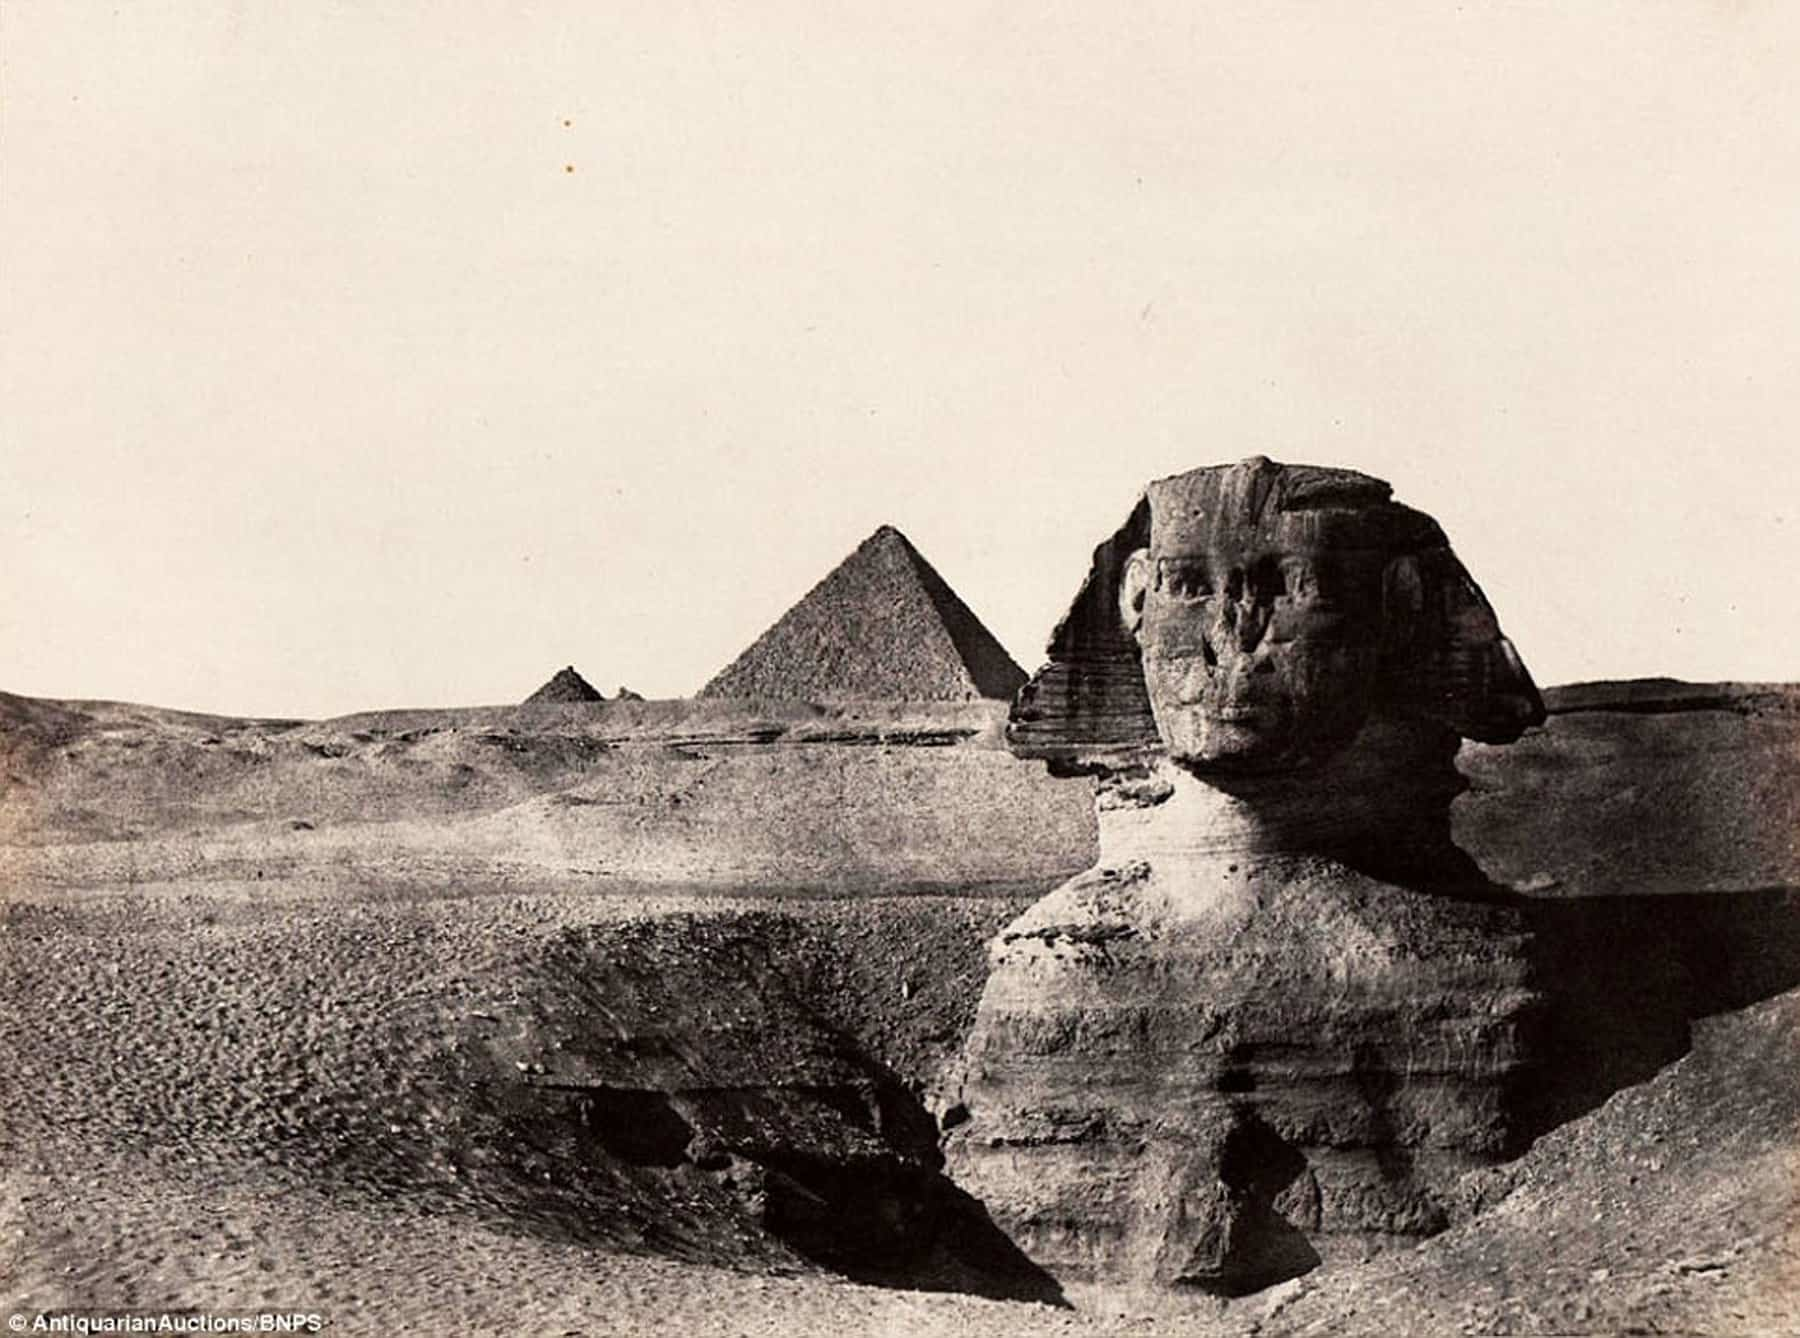 sphinx - The History of Travel Photography